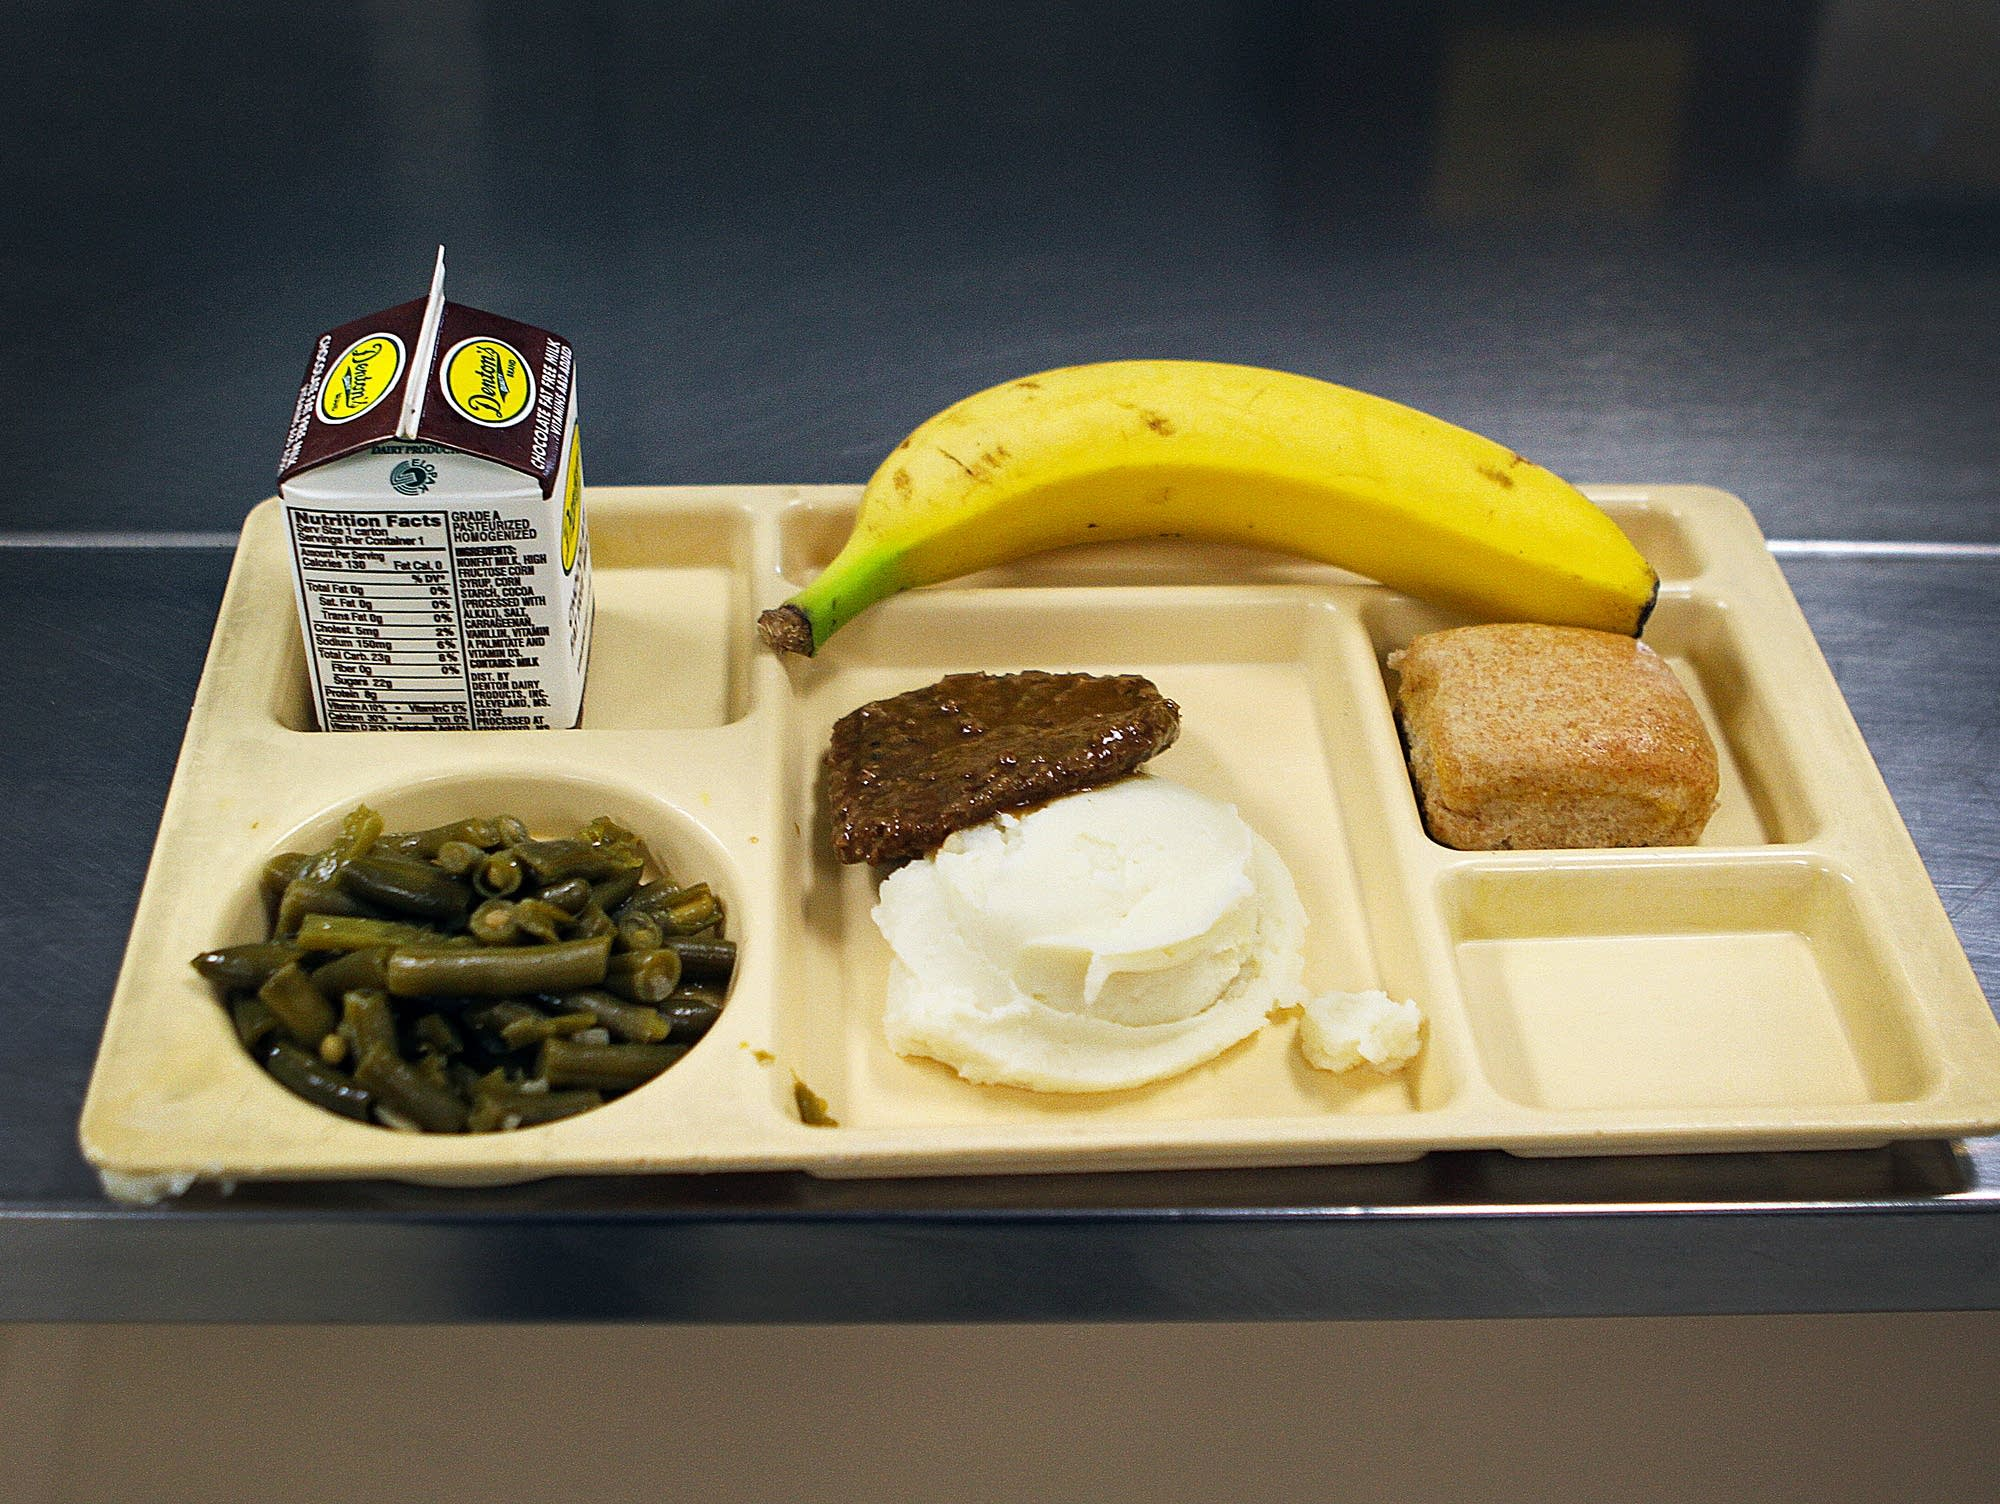 The day's lunch at Bell Academy